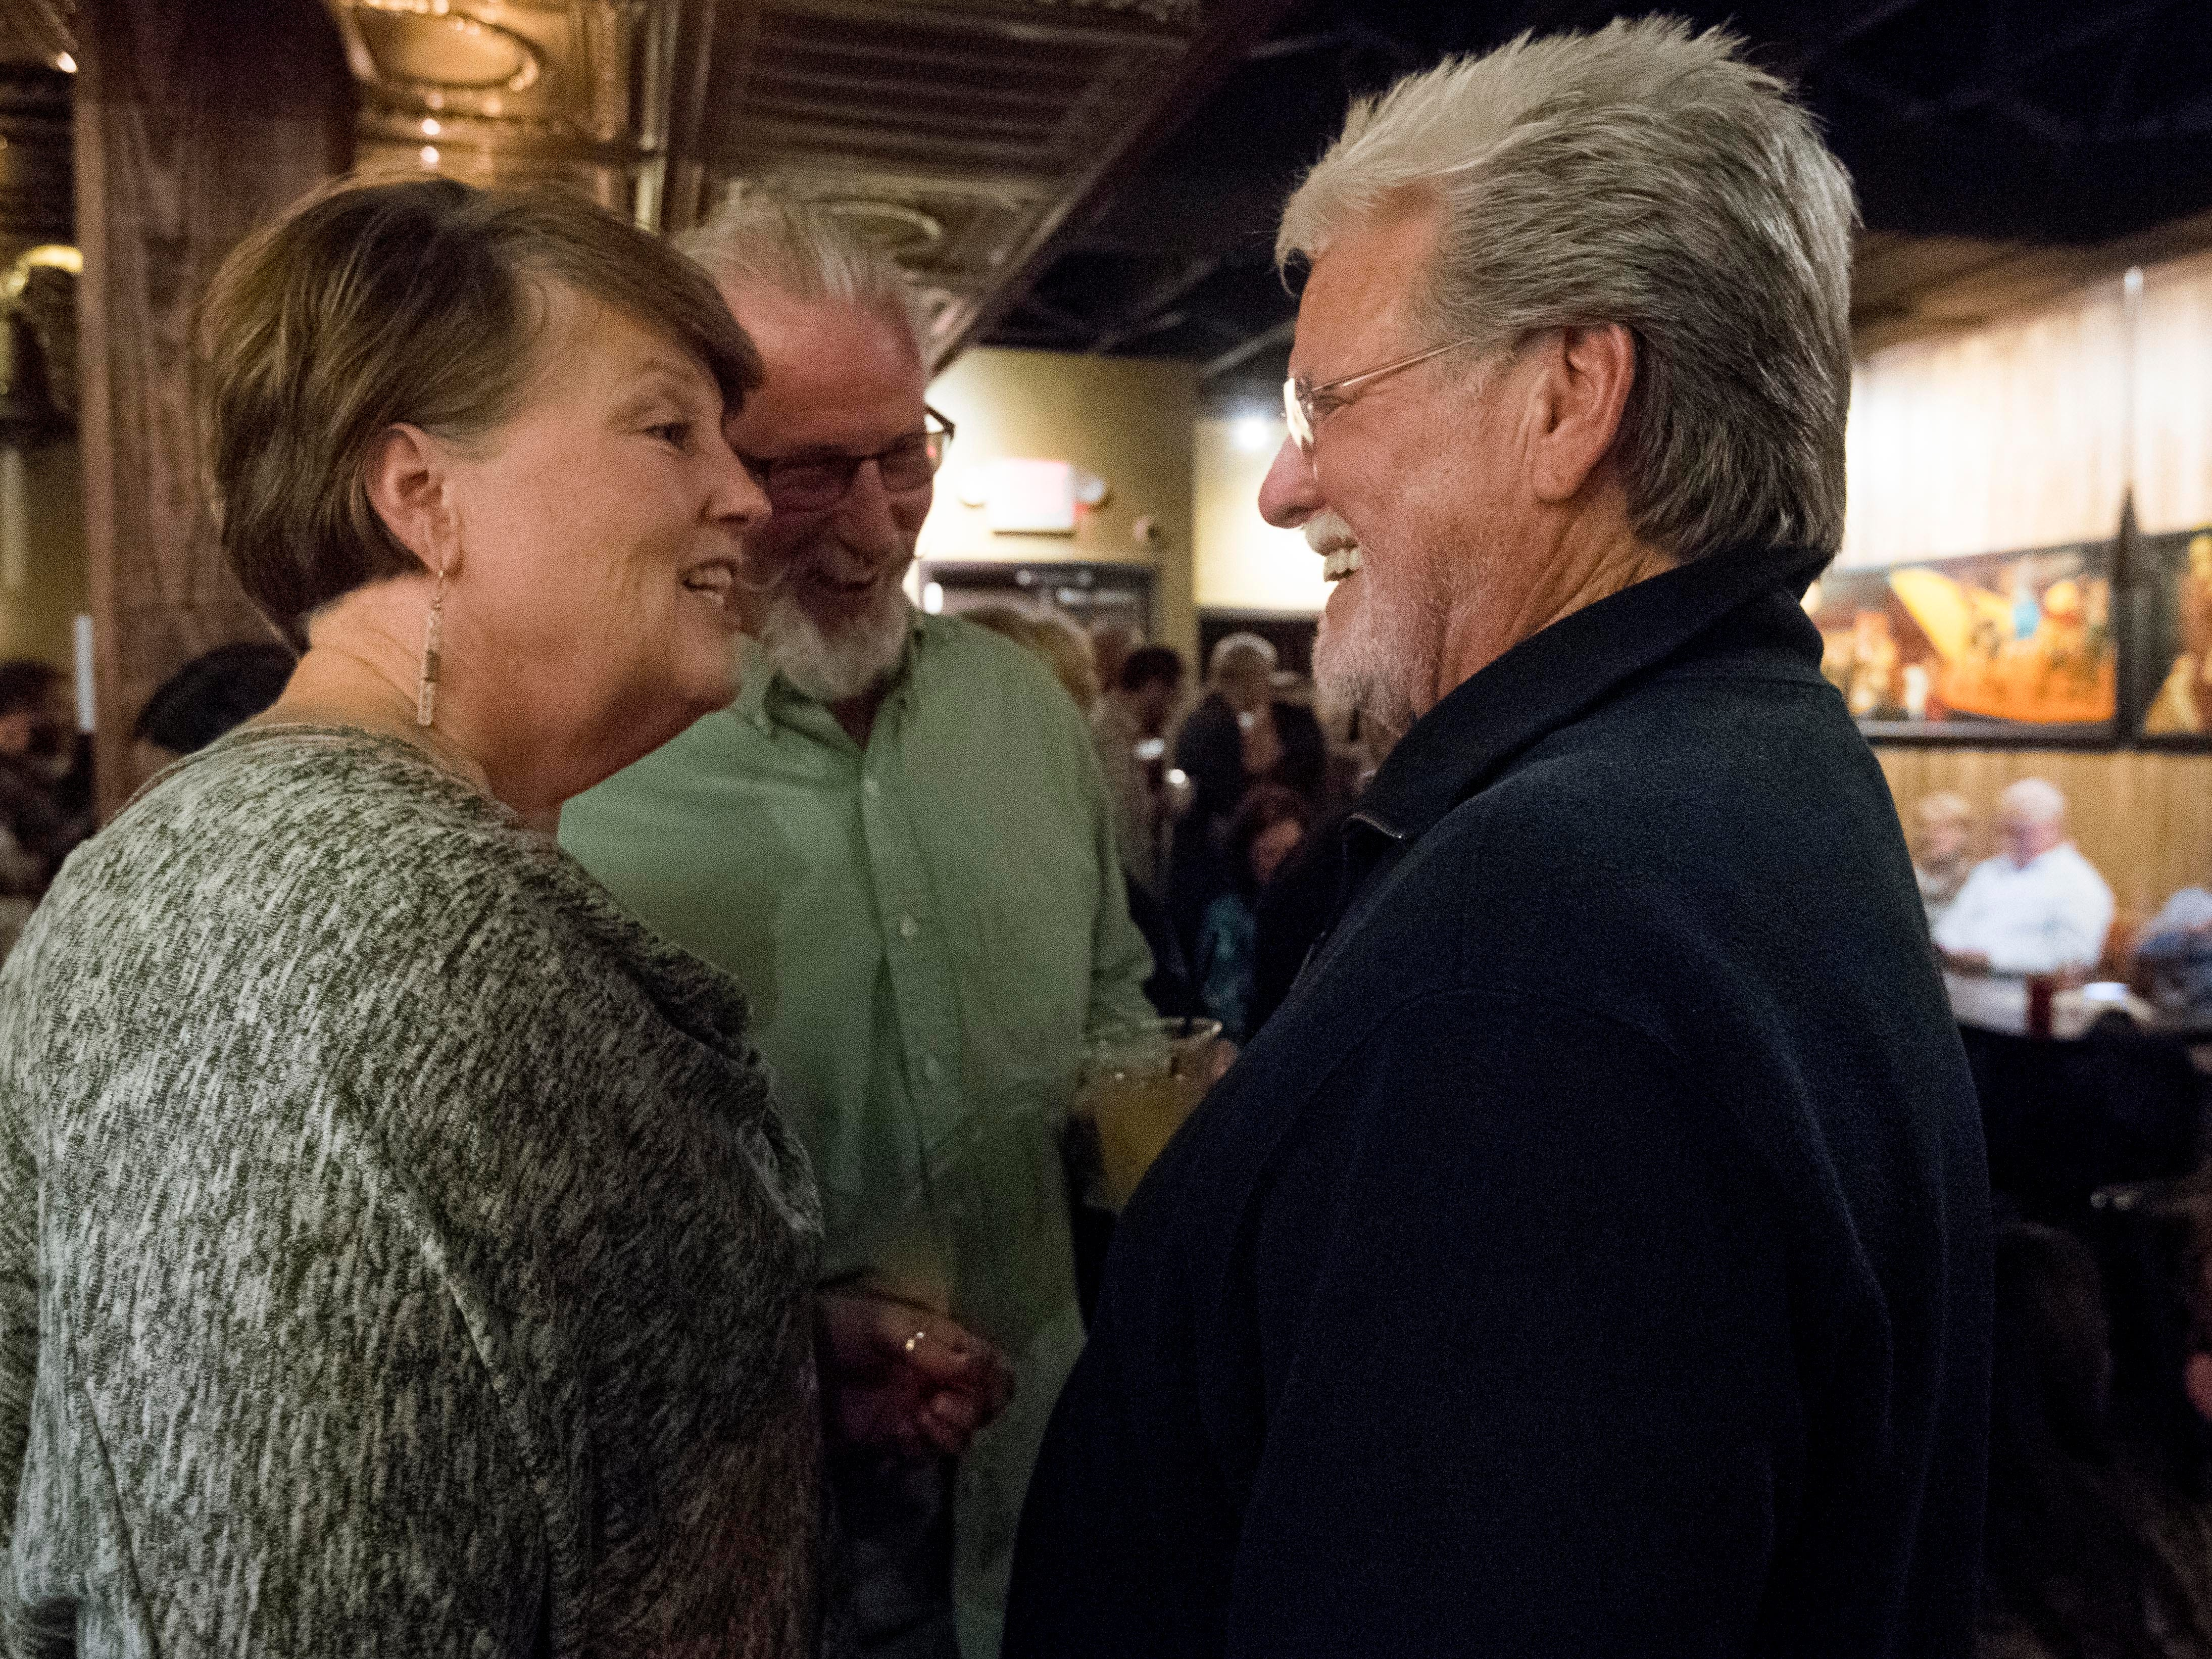 Con Hunley meets with fans after his show at The Corner Lounge on Friday, October 19, 2018.